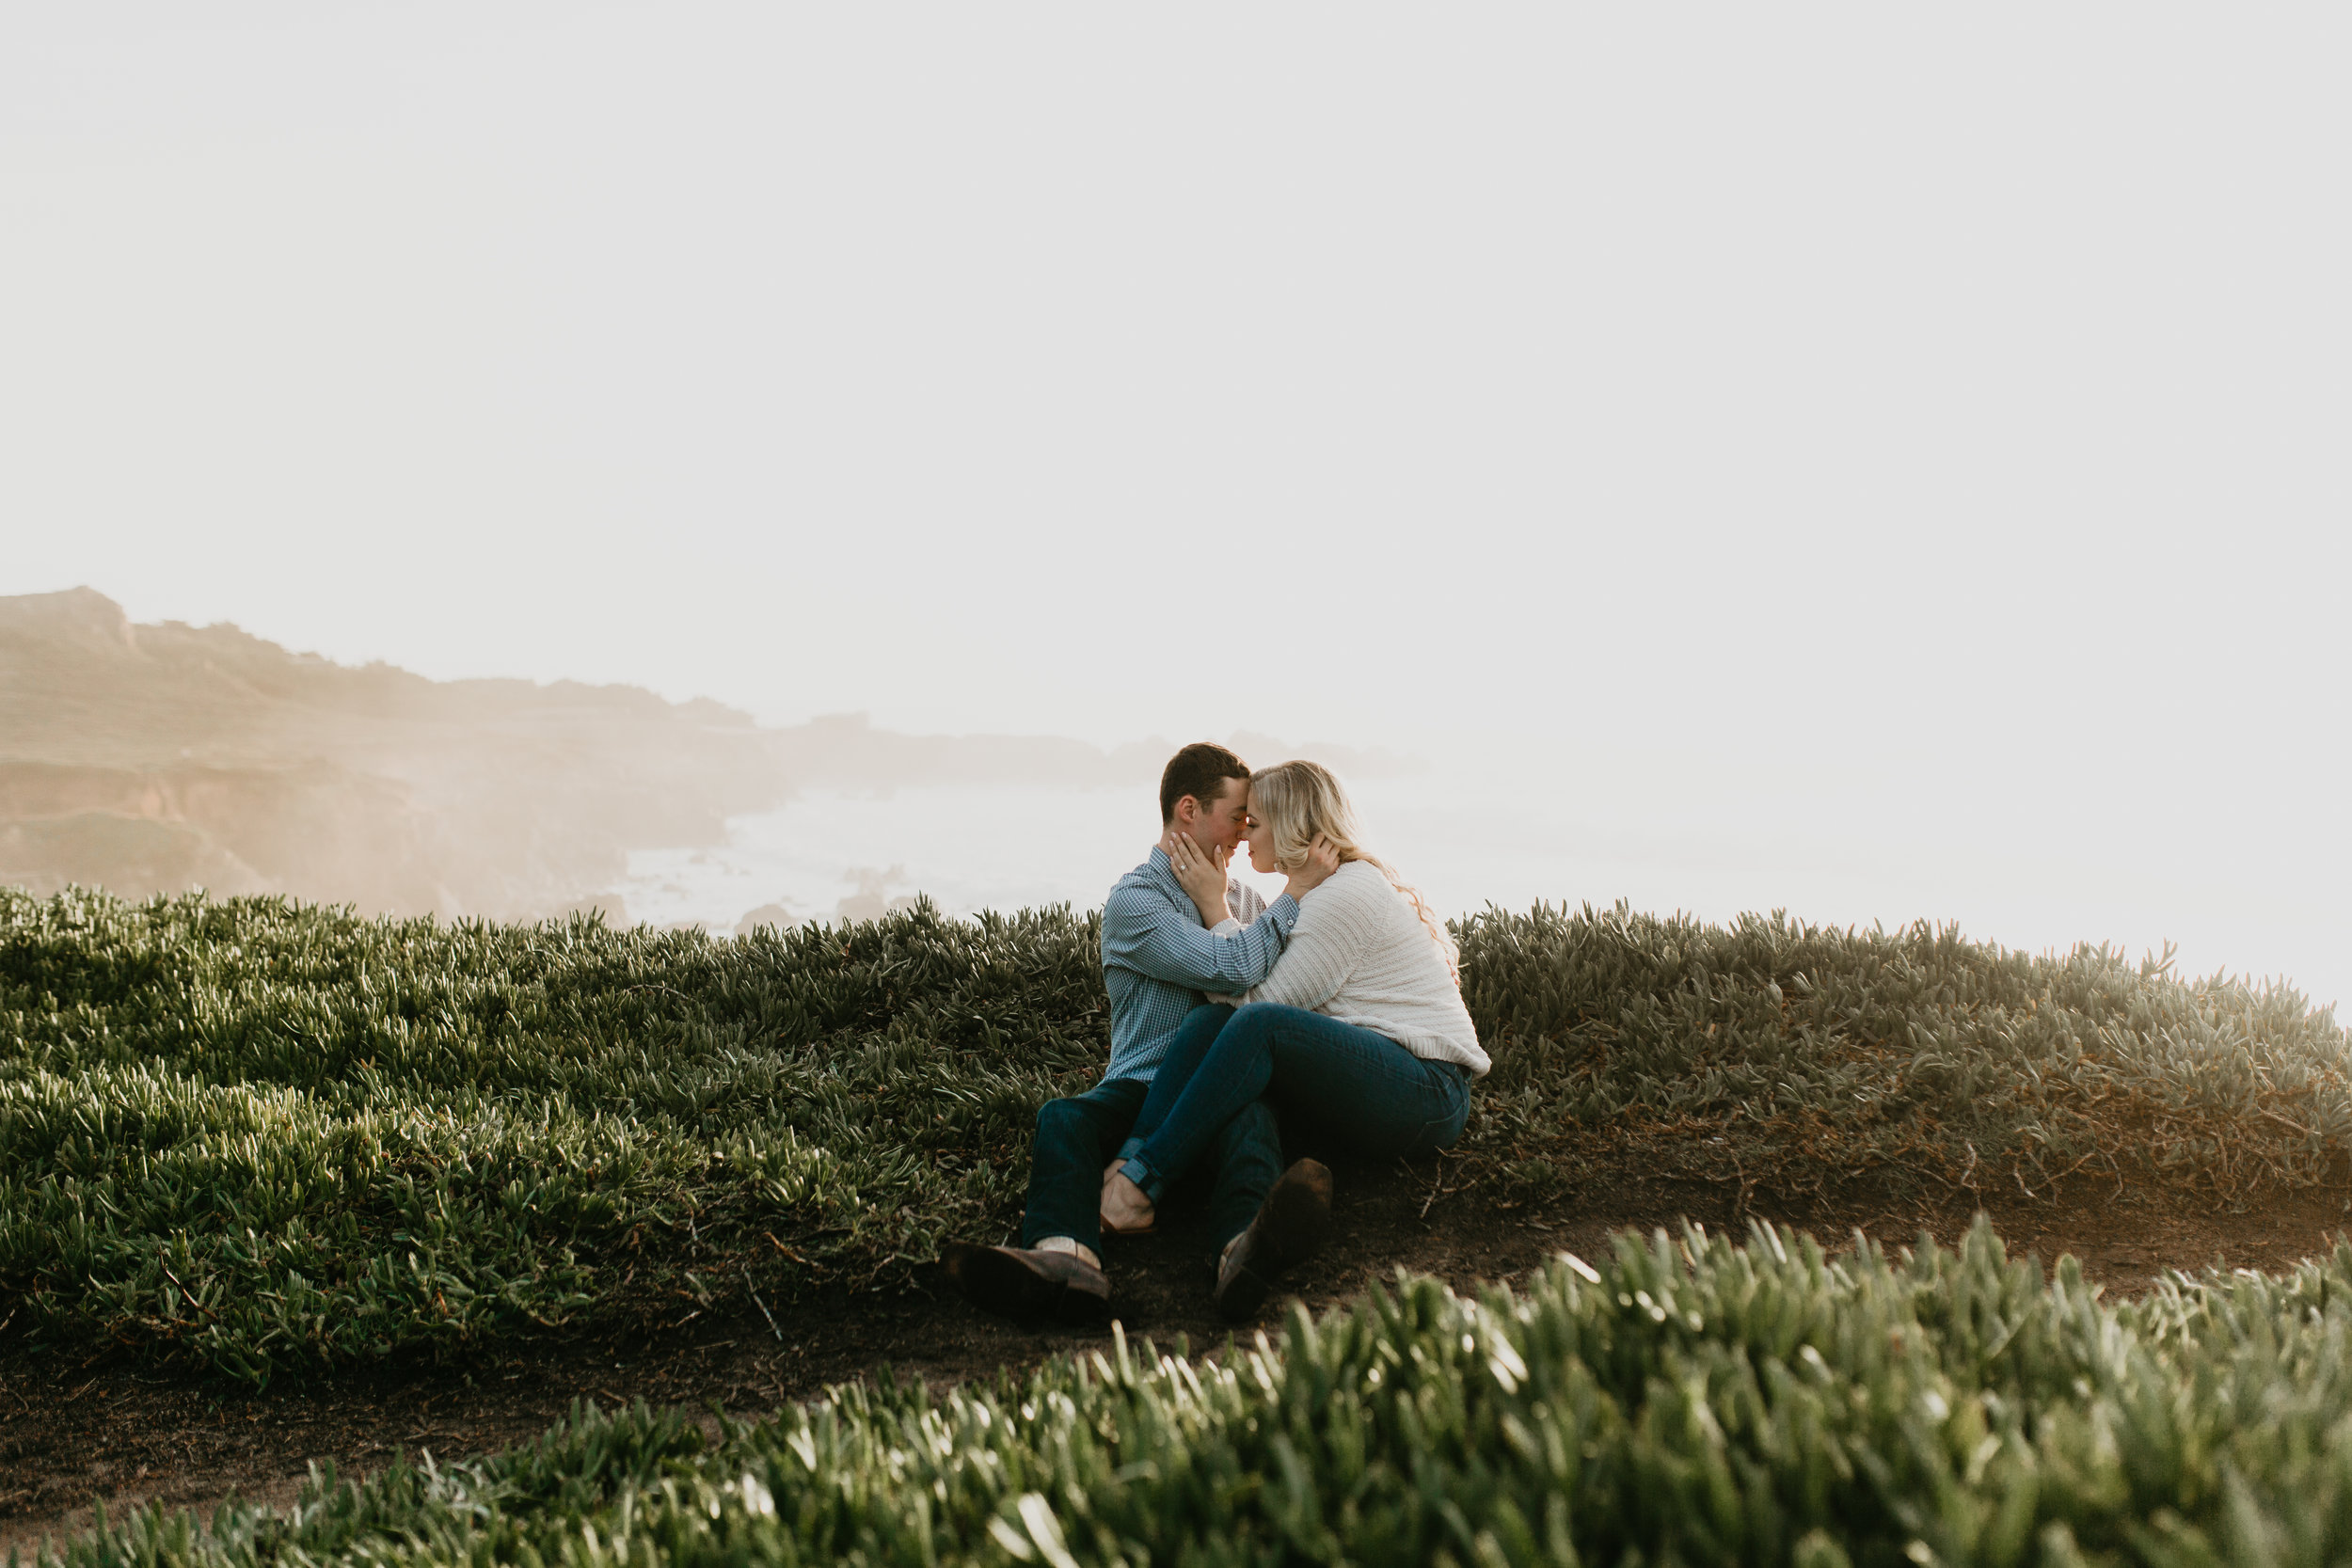 Nicole-Daacke-Photography-big-sur-garrapatta-state-park-adventurous-engagement-session-bixy-bridge-elopement-big-sur-wedding-photographer-monterey-elopement-photographer-california-golden-sunset-coast-photos-22.jpg